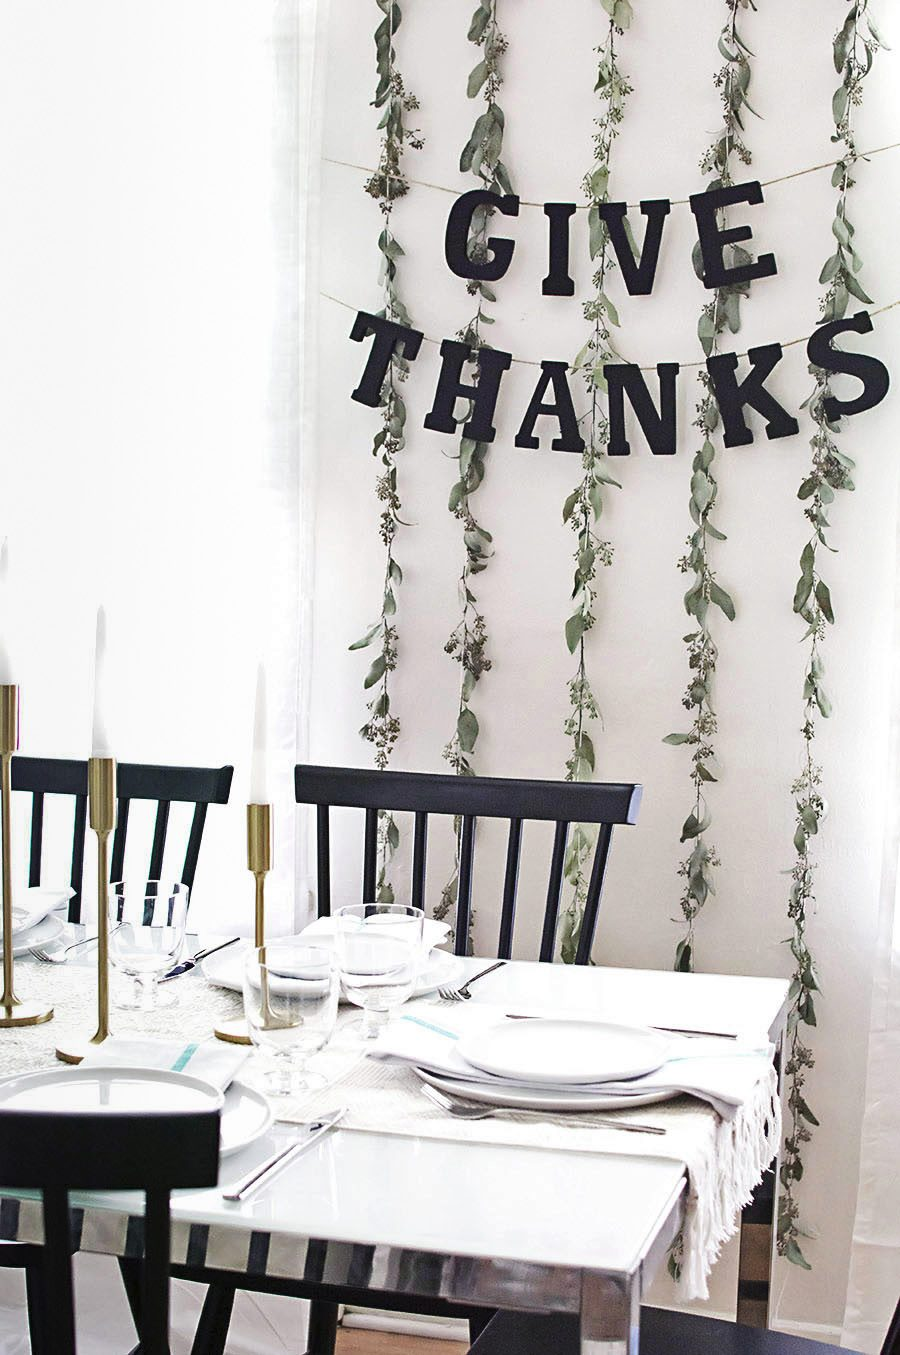 Thankgiving garland from Homey Oh My! Easy Thanksgiving Food and Decor Ideas for a Stress-Free Holiday Easy Thanksgiving Food and Decor Ideas for a Stress-Free Holiday Thankgiving garland from Homey Oh My